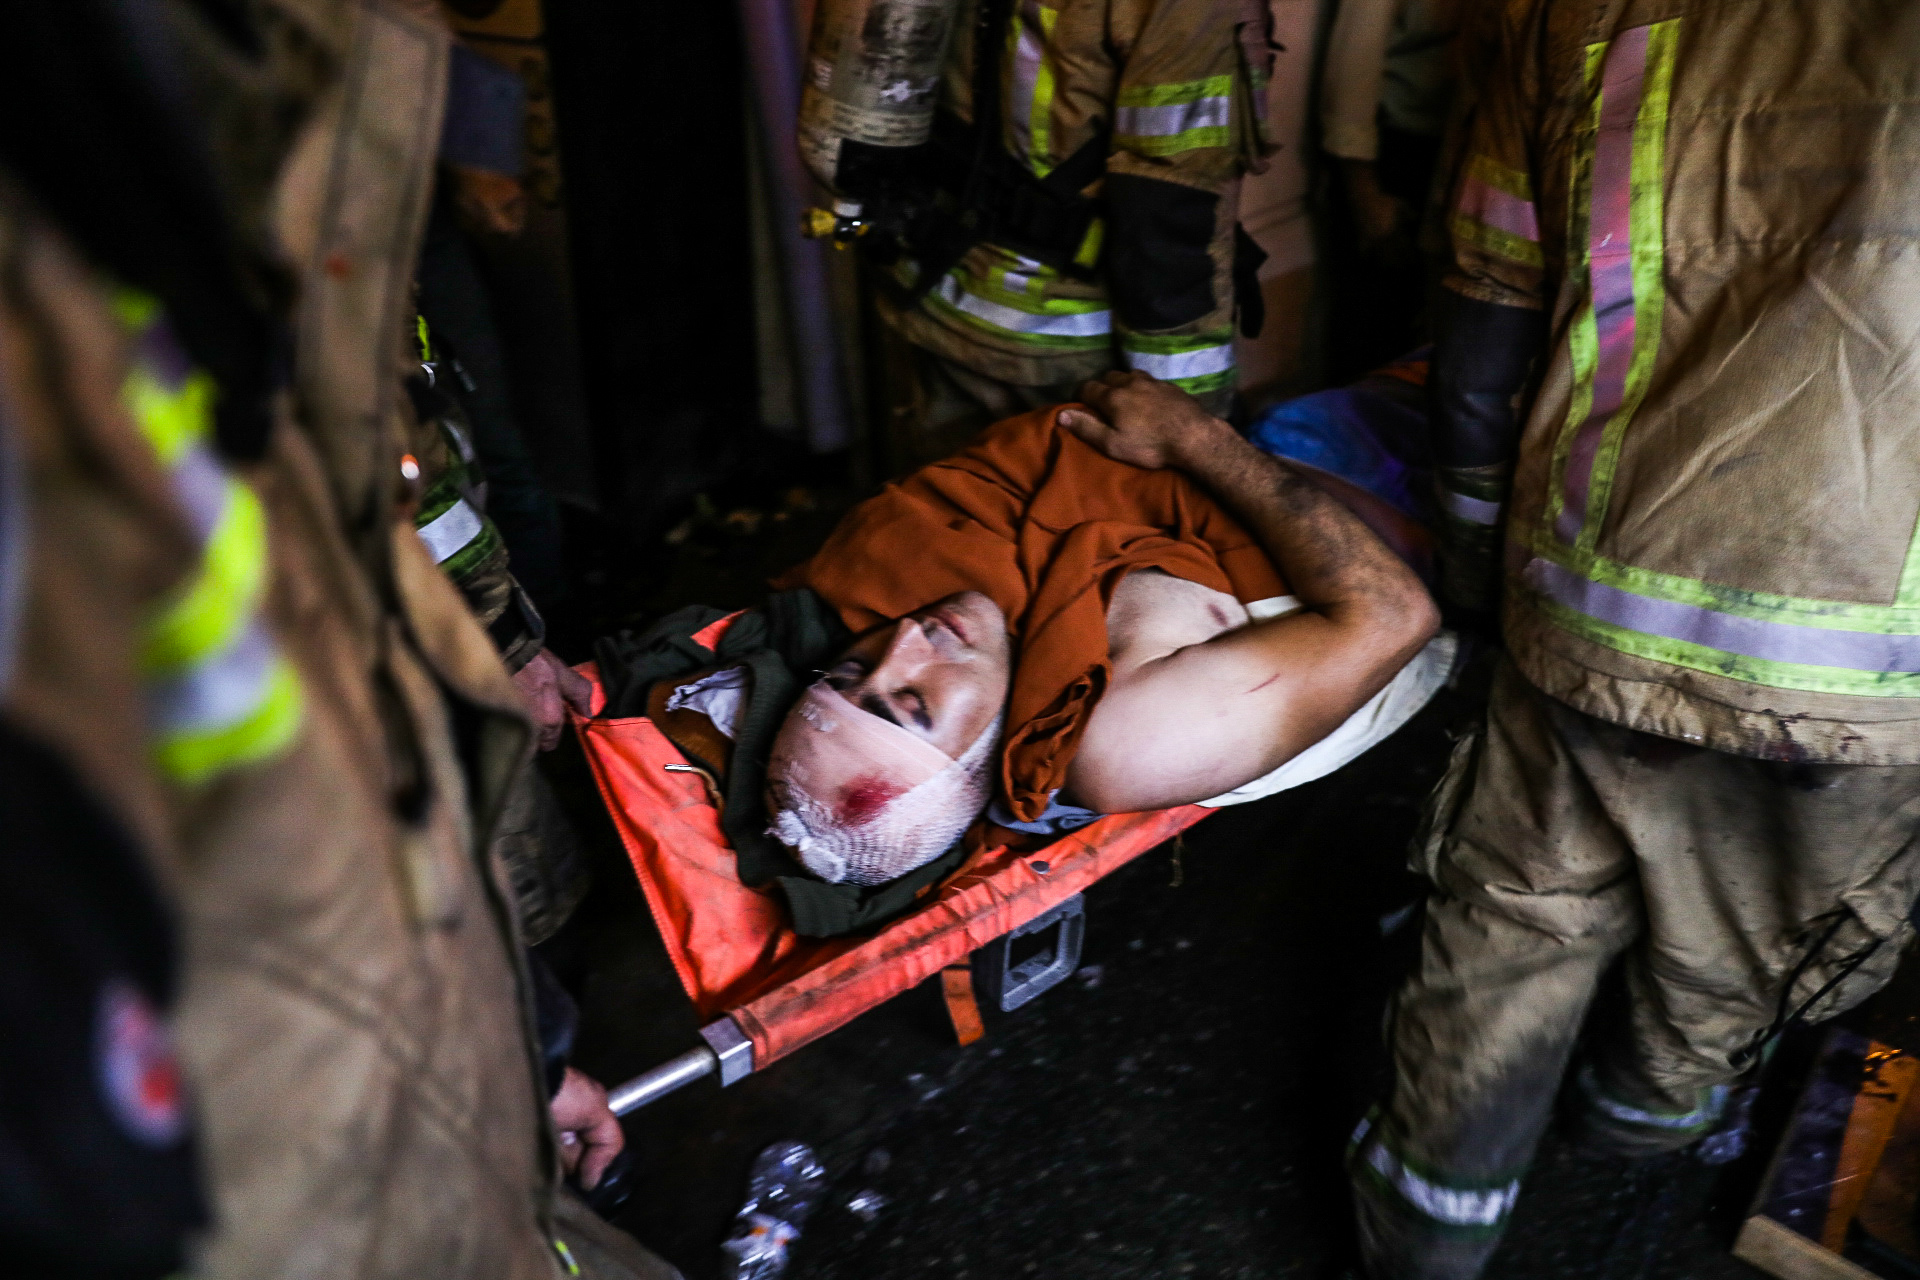 First responders carry away an injured person on a stretcher at the scene of an explosion (AFP)